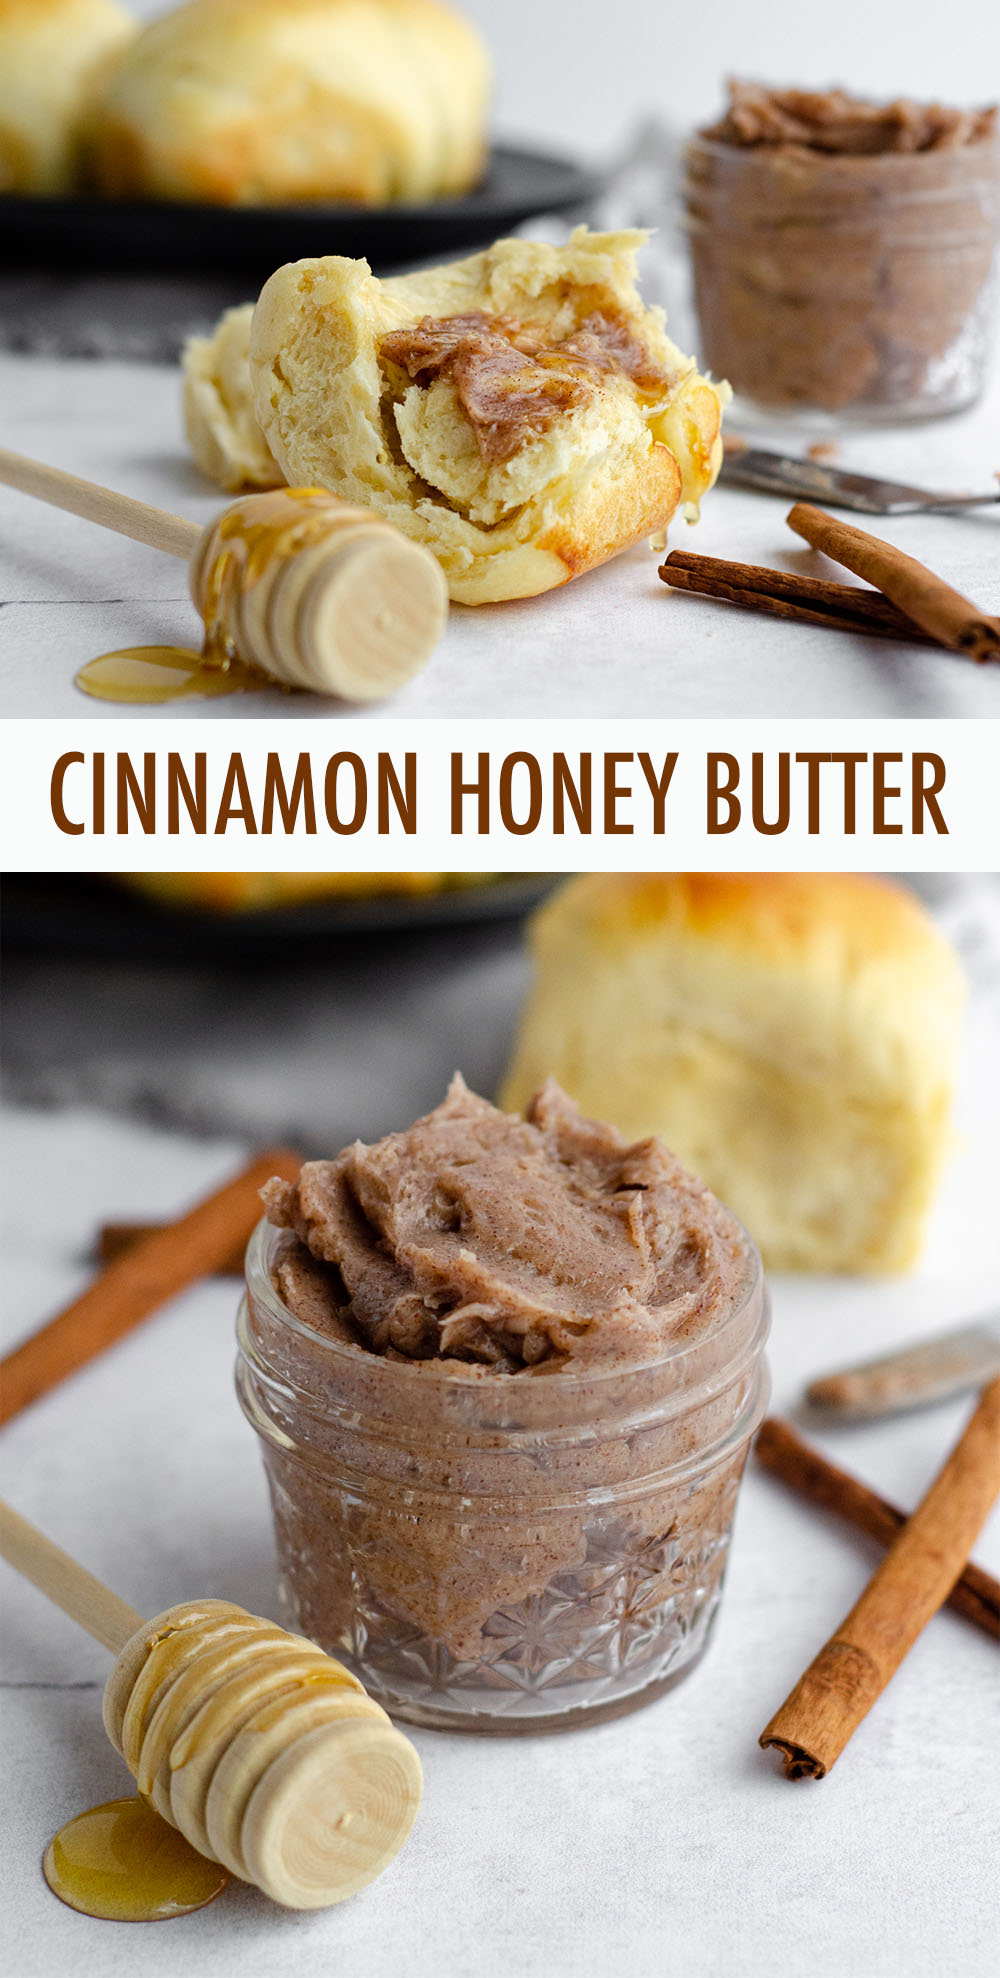 Making your own cinnamon honey butter is as simple as six ingredients. Perfect for topping yeast breads, sweet breads, and sweet potatoes, and could even be called a Texas Roadhouse copycat.